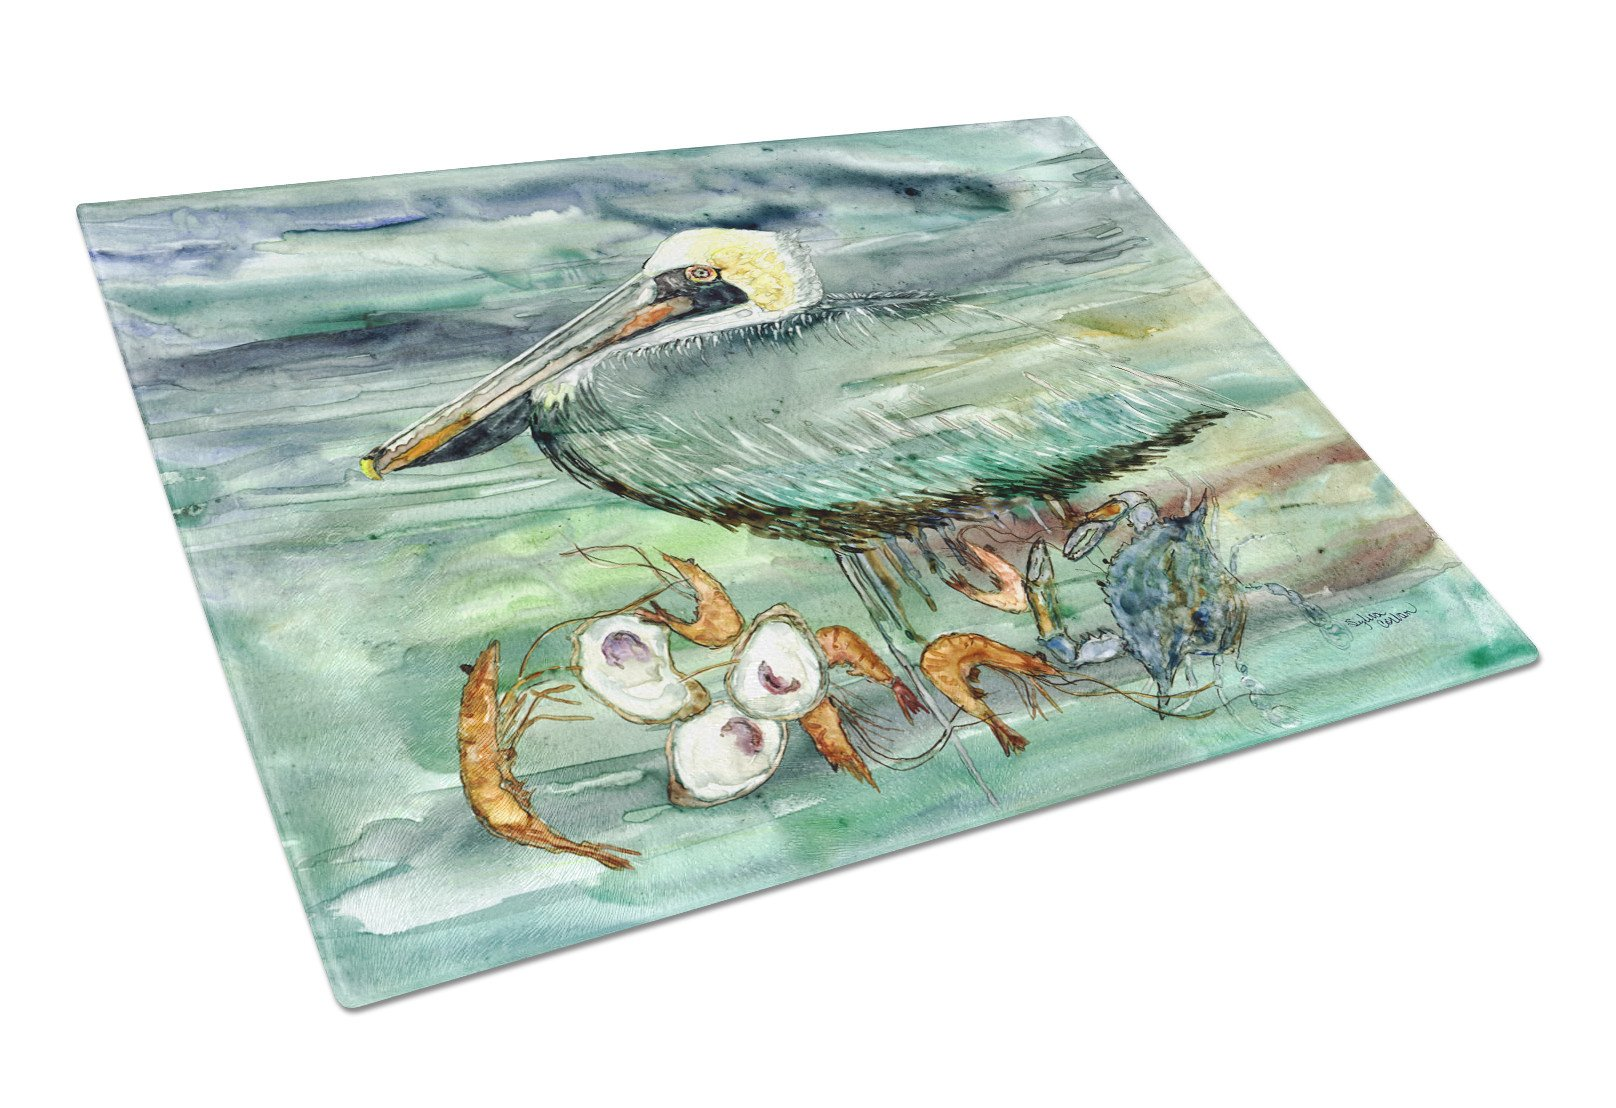 Watery Pelican, Shrimp, Crab and Oysters Glass Cutting Board Large 8978LCB by Caroline's Treasures